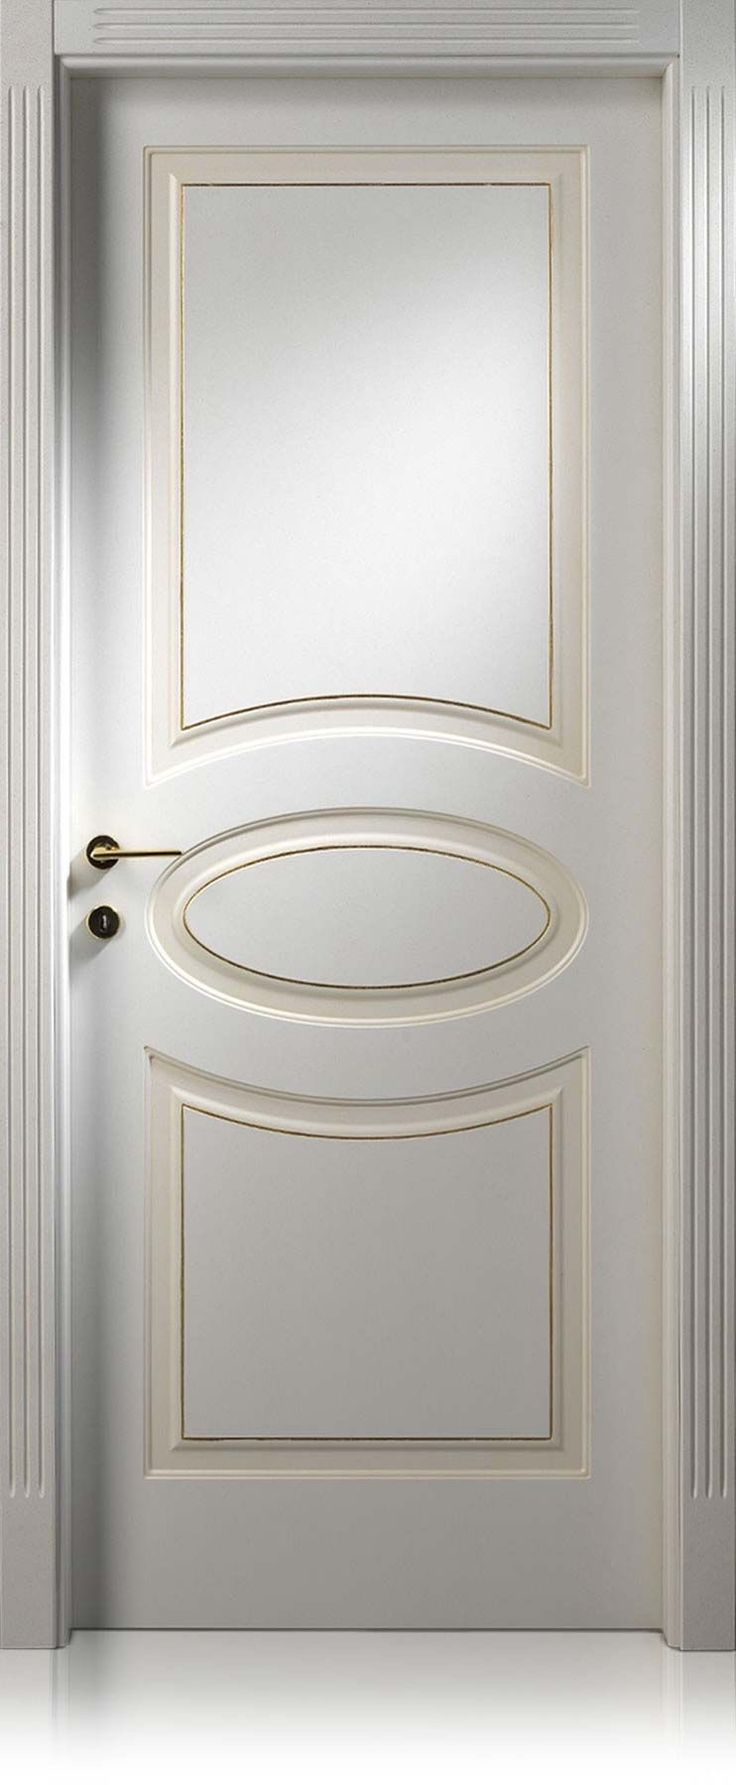 16 best Classic doors images on Pinterest | Classic doors, Interior ...